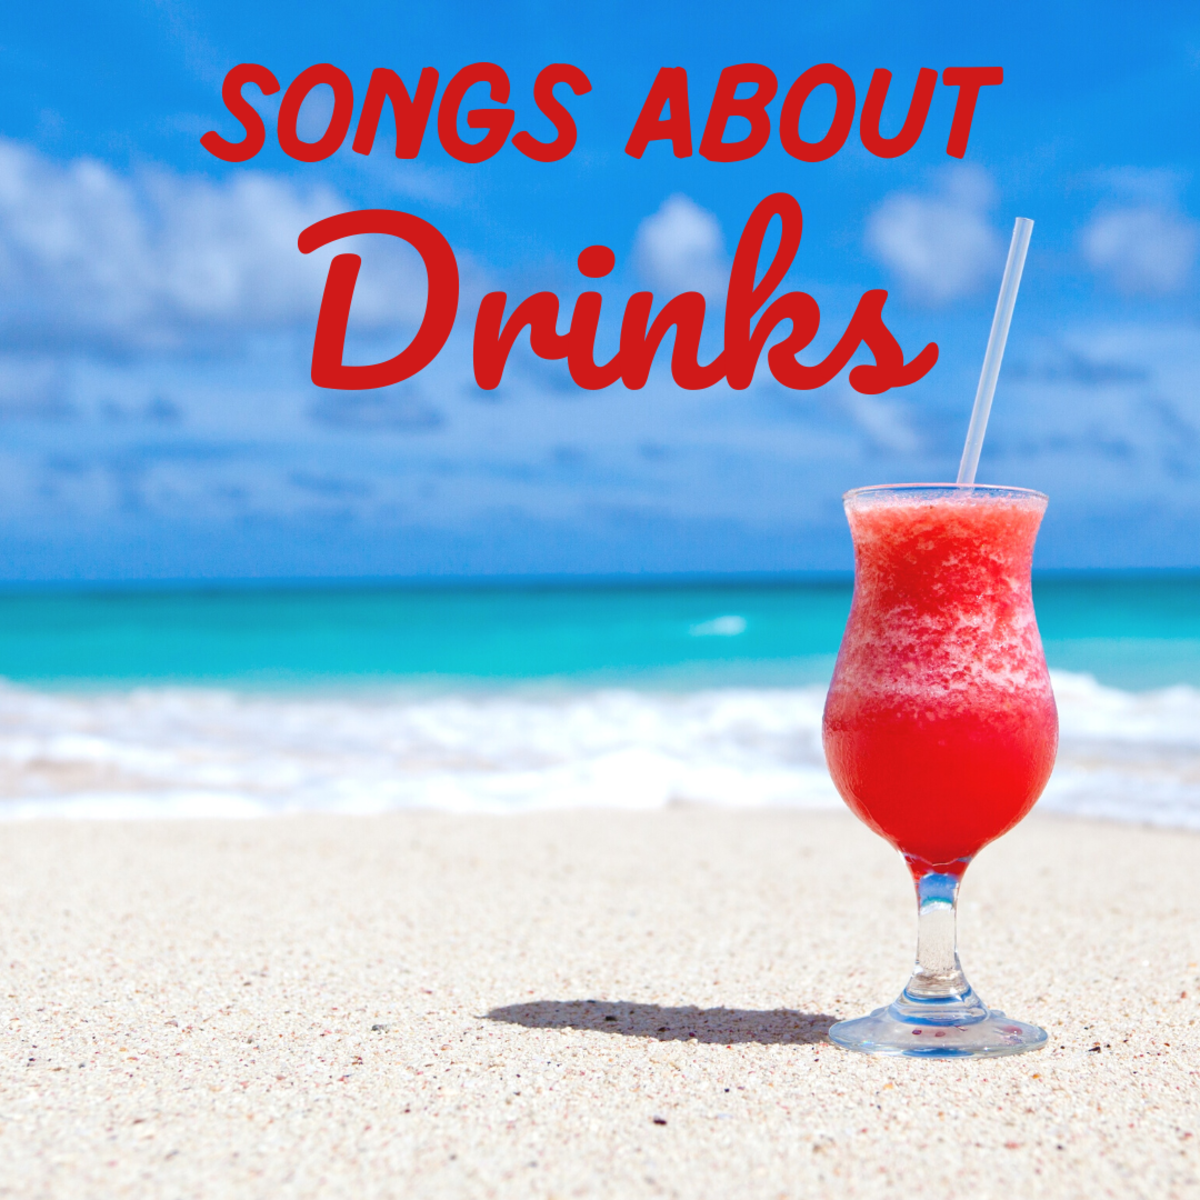 A good drink can help you have a great time. Here are 100 songs all about drinks for your listening pleasure!